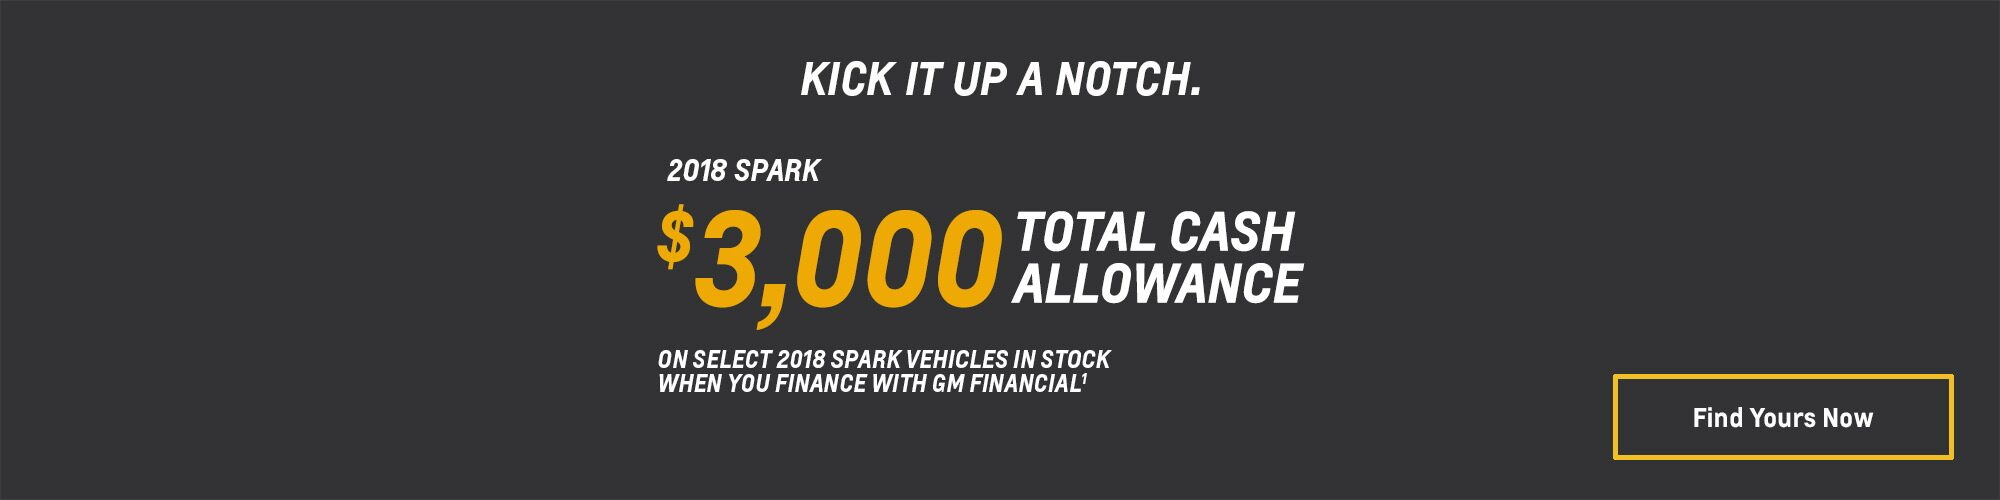 2018 Spark Subcompact Car Deals and Offers